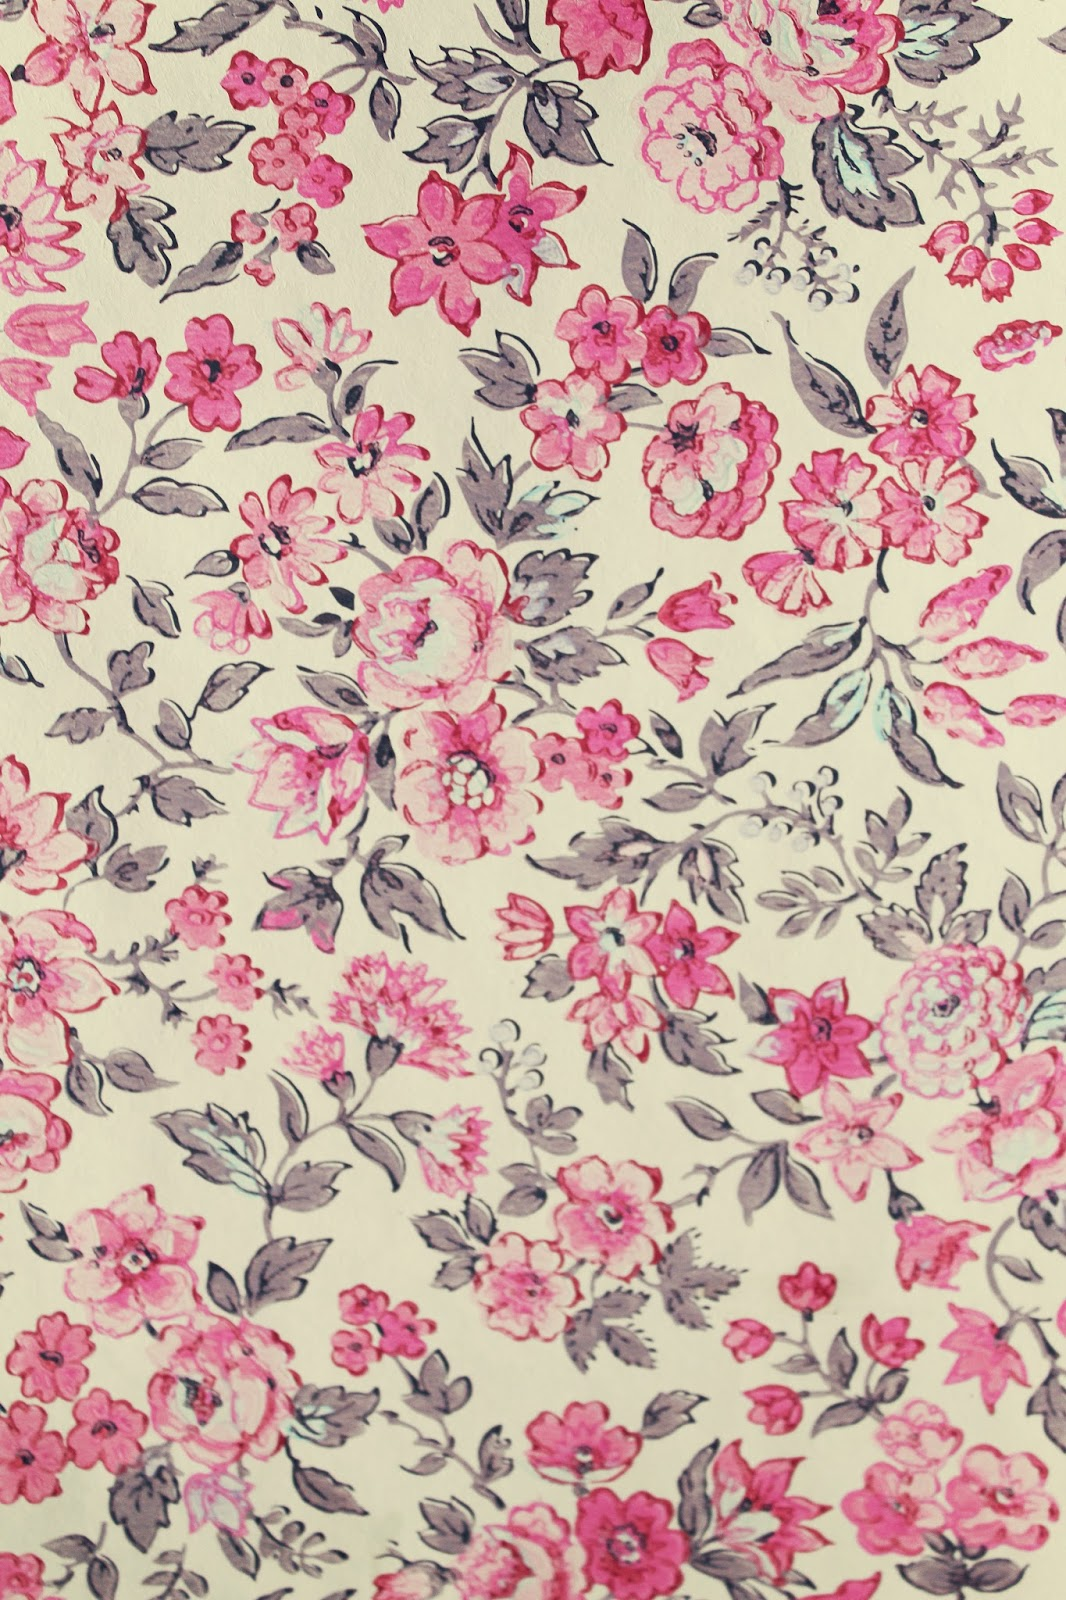 Tumblr Vintage Floral Patterns high resolution (1066 x 1600 )